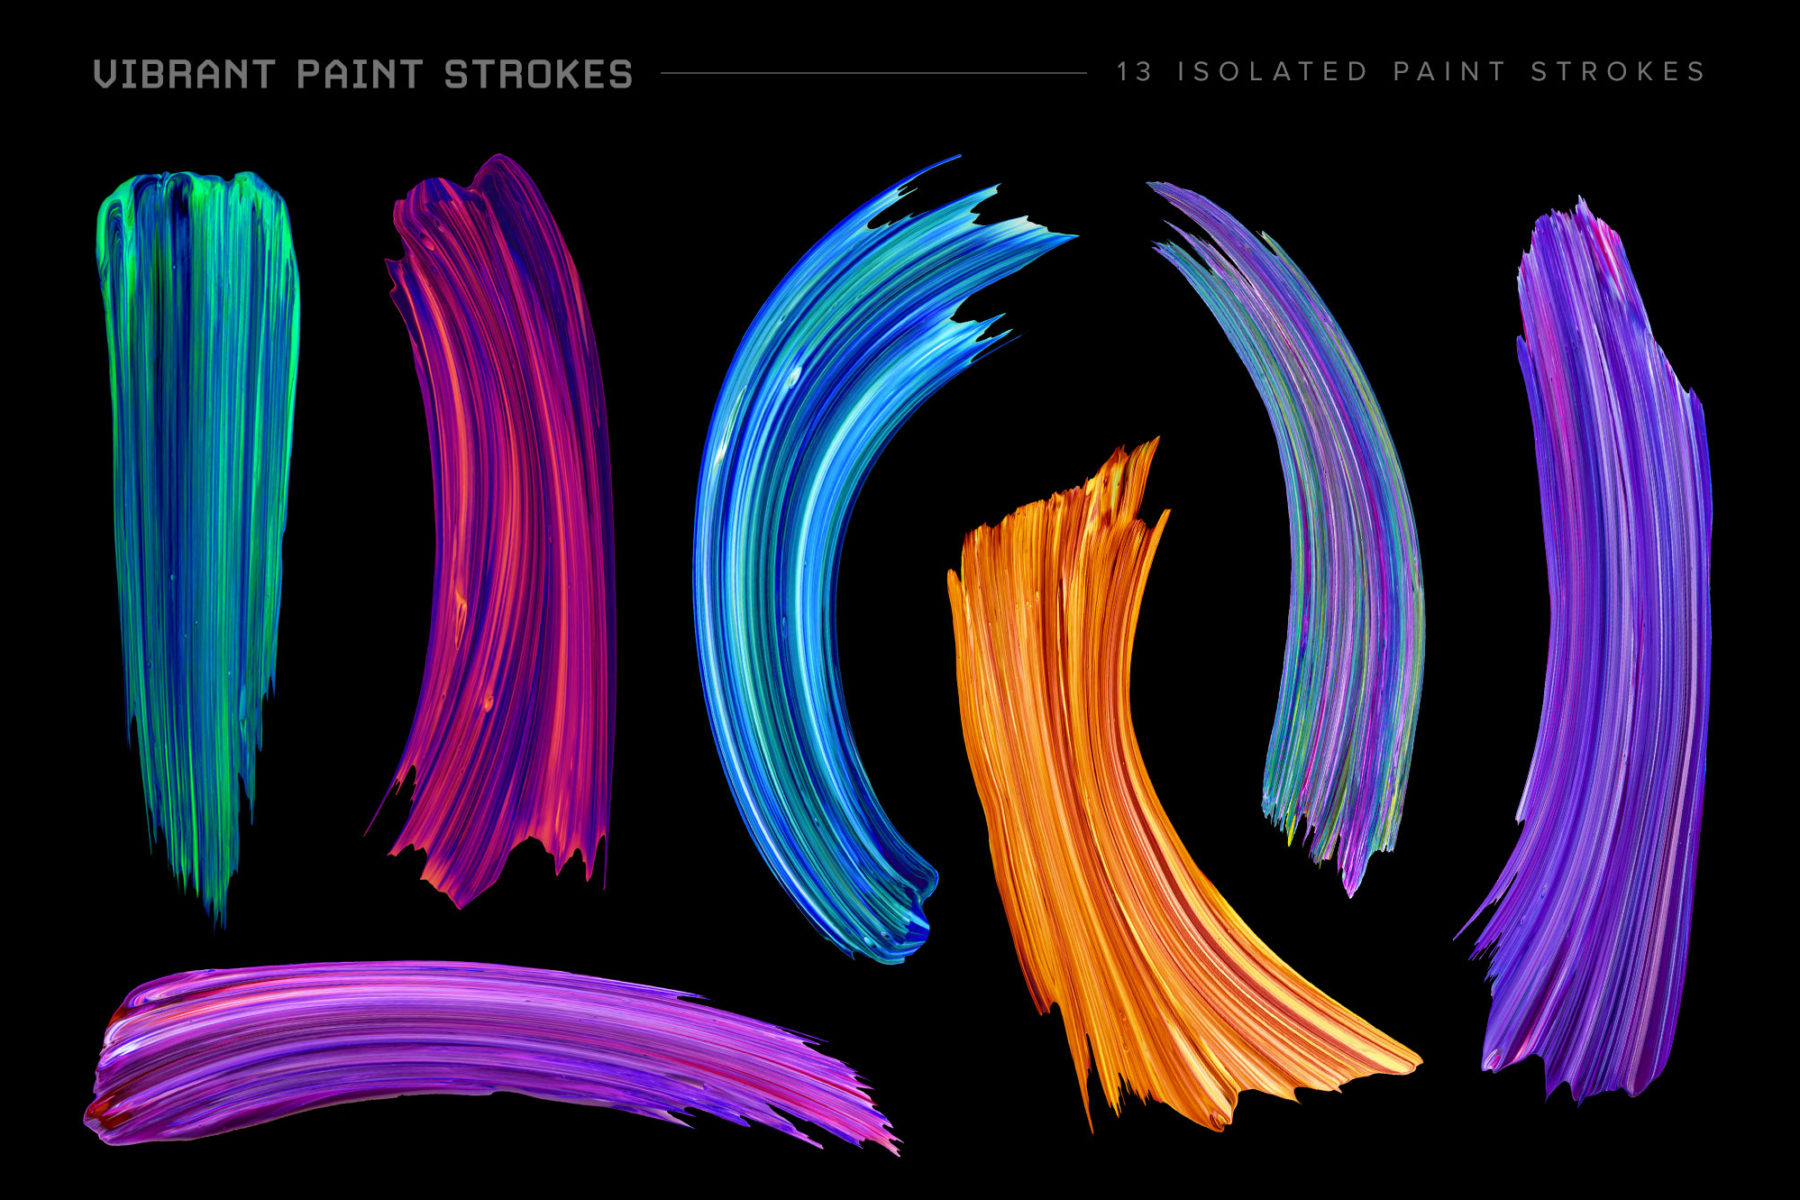 https://nusupply.co/wp-content/uploads/2020/01/14-Vibrant-Paint-Strokes_preview_color-grid_06-13-1800x1200.jpg